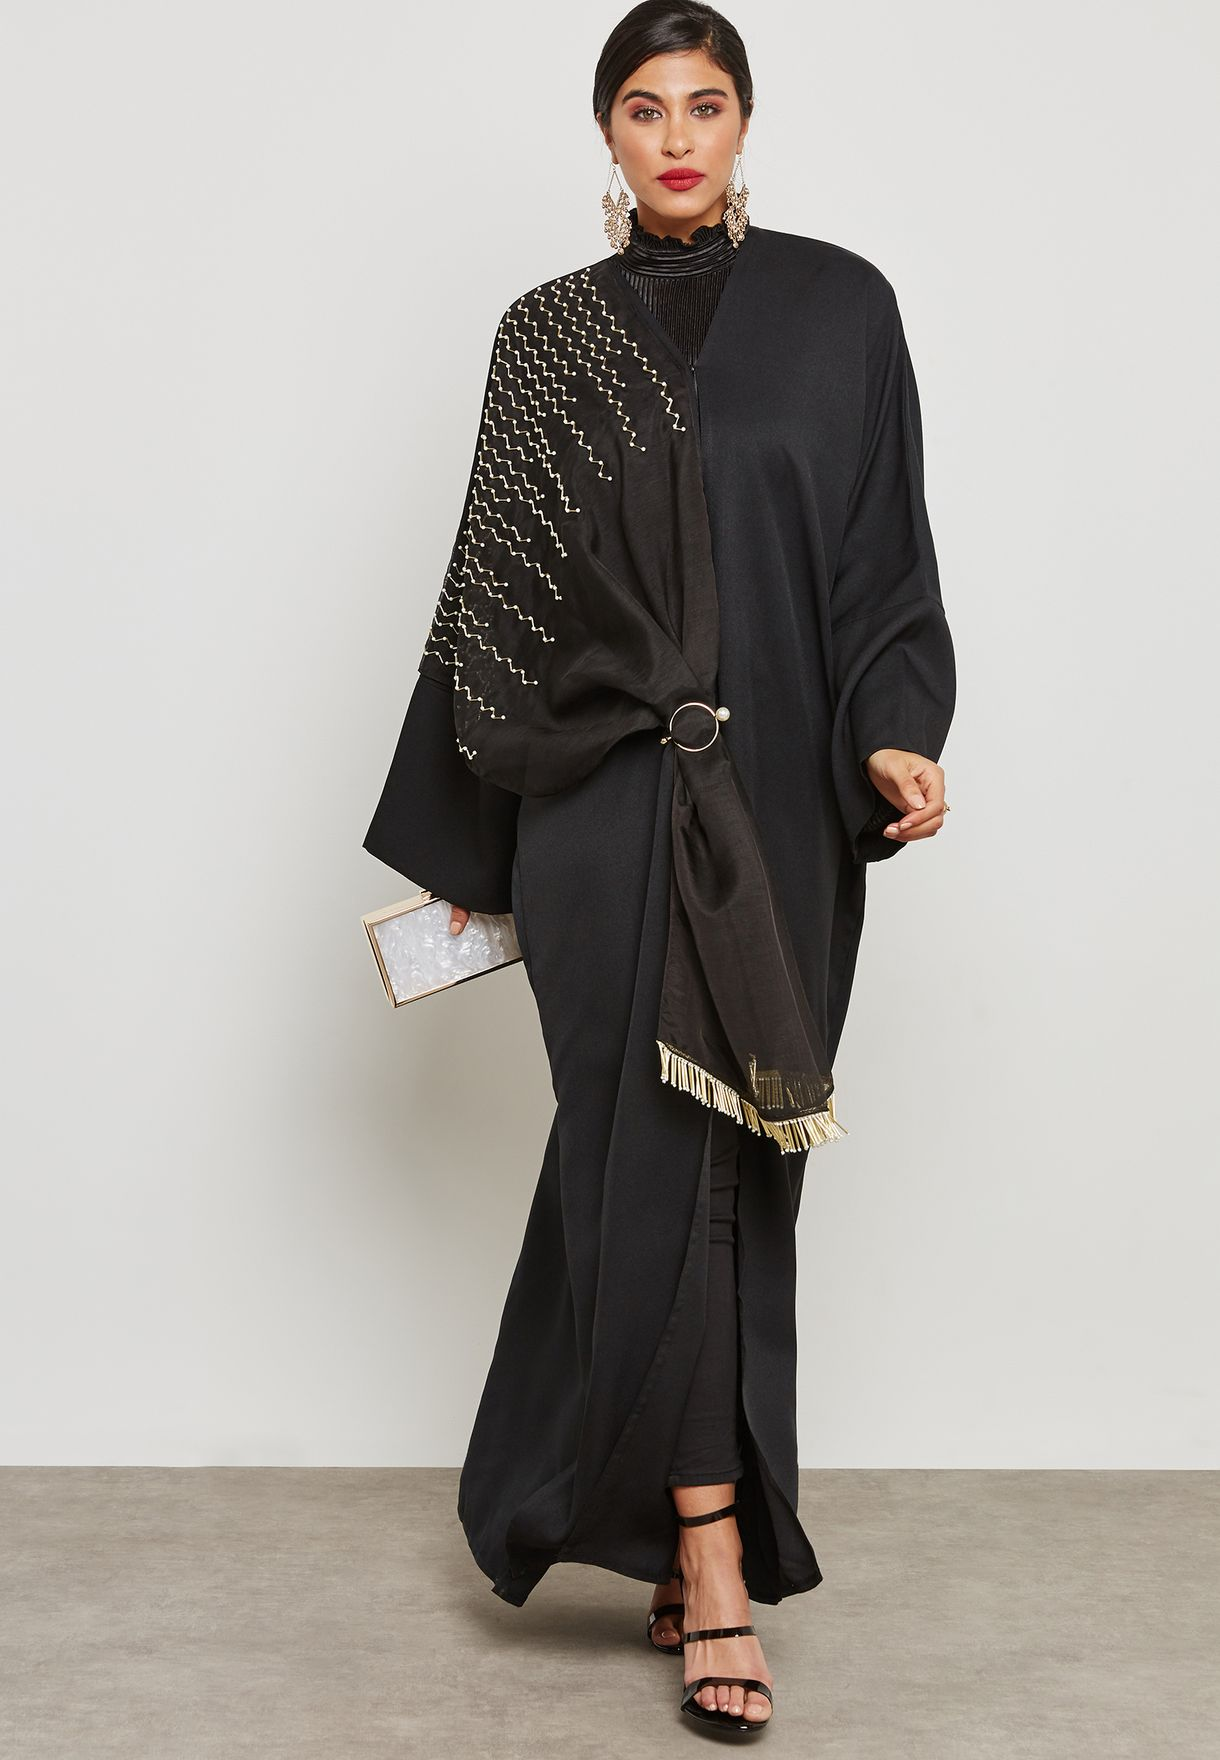 Shawl Look One Side Embellished Abaya